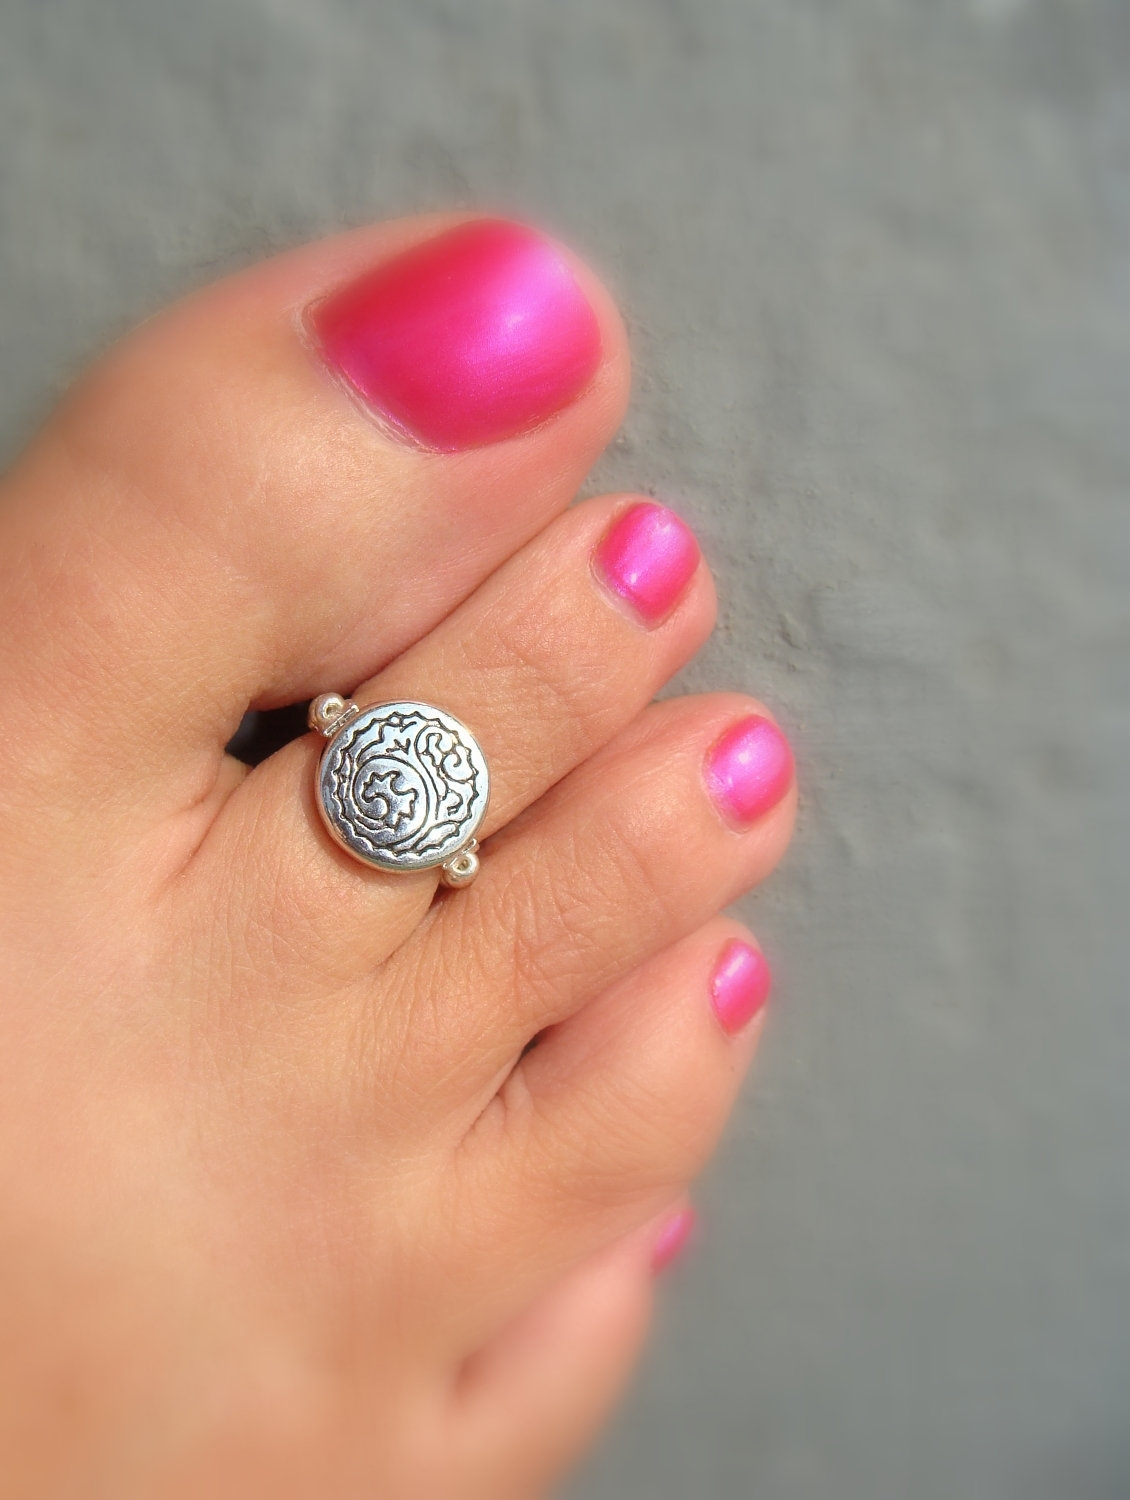 Toe Ring – Silver Wind Wave Coin Stretch Bead Toe Ring | Toe Rings Within 2018 Chevron Toe Rings (View 14 of 15)